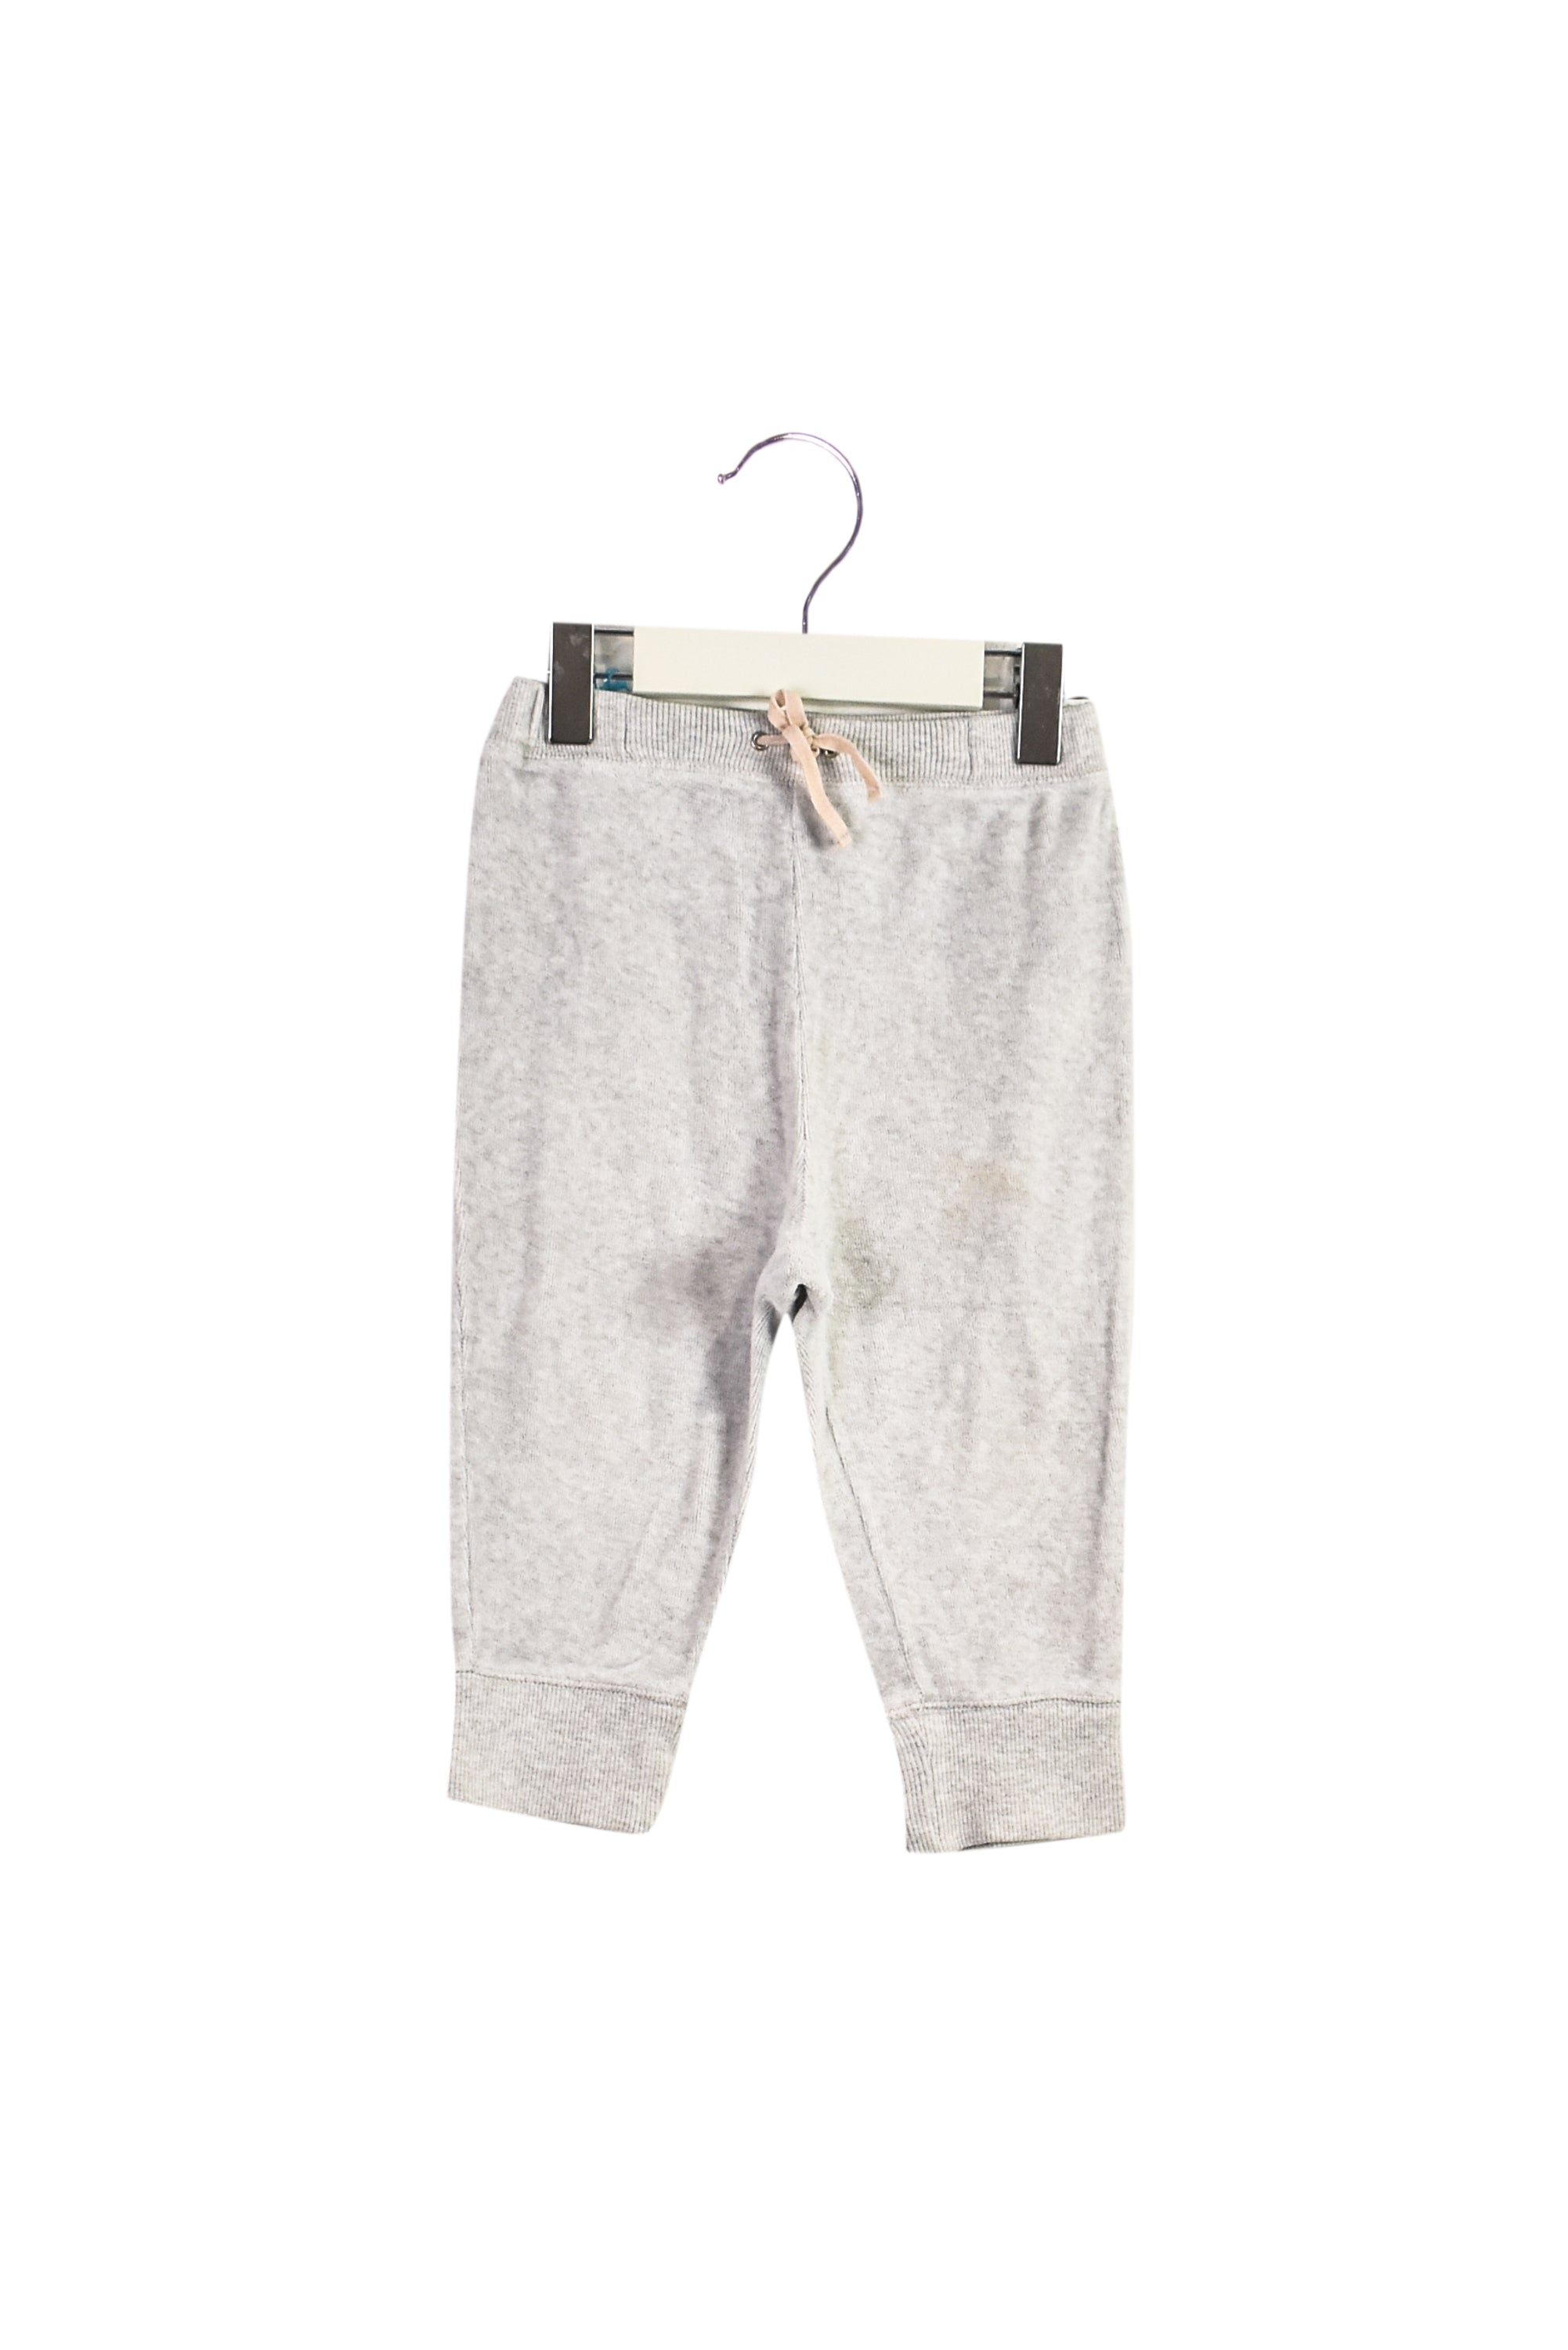 beac17141853d 10029394 Burberry Baby~Pants 18M at Retykle